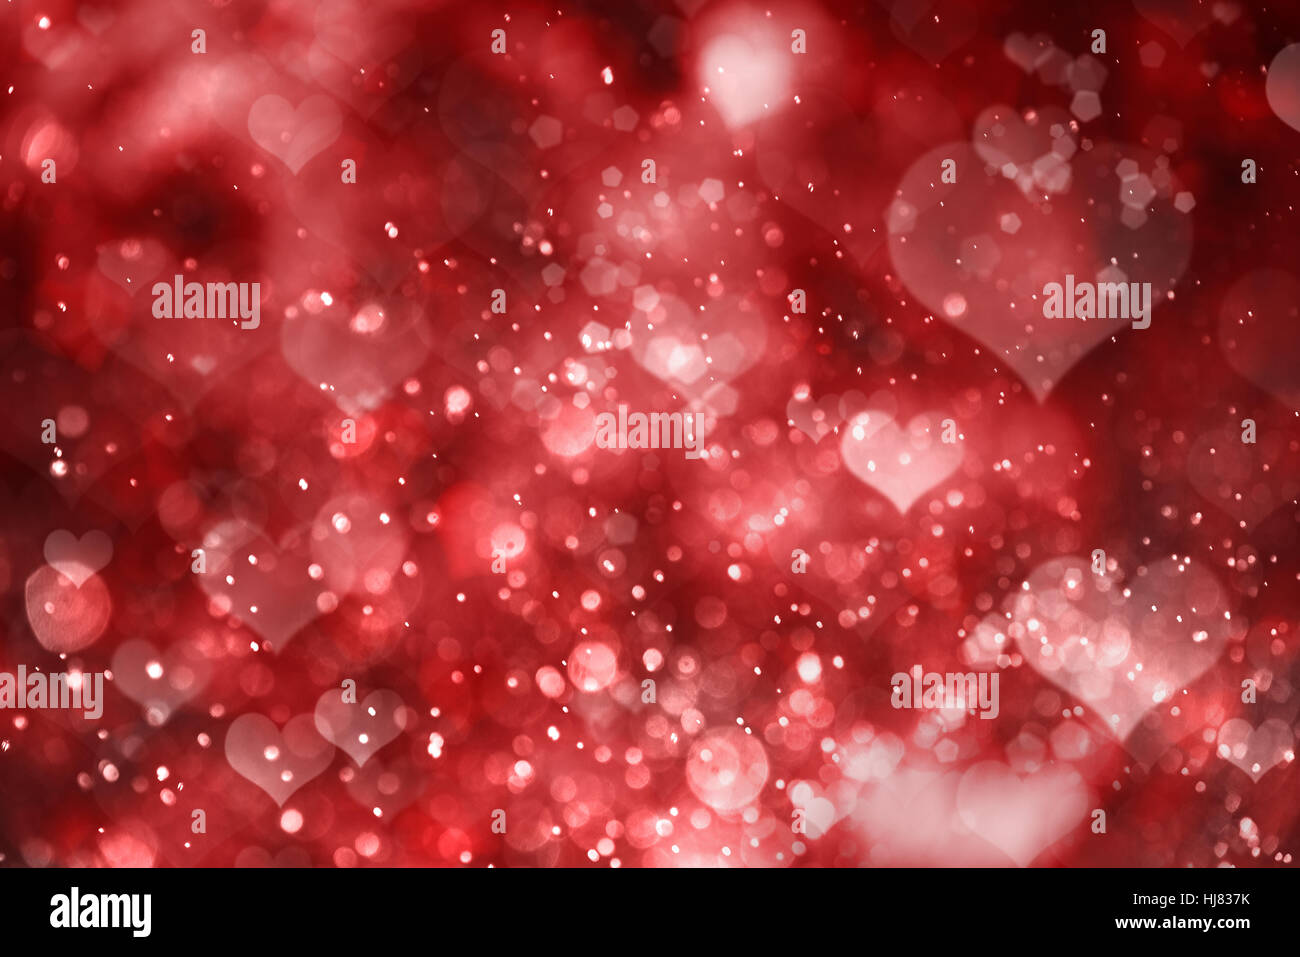 Red hearts. Valentine day Photo Stock